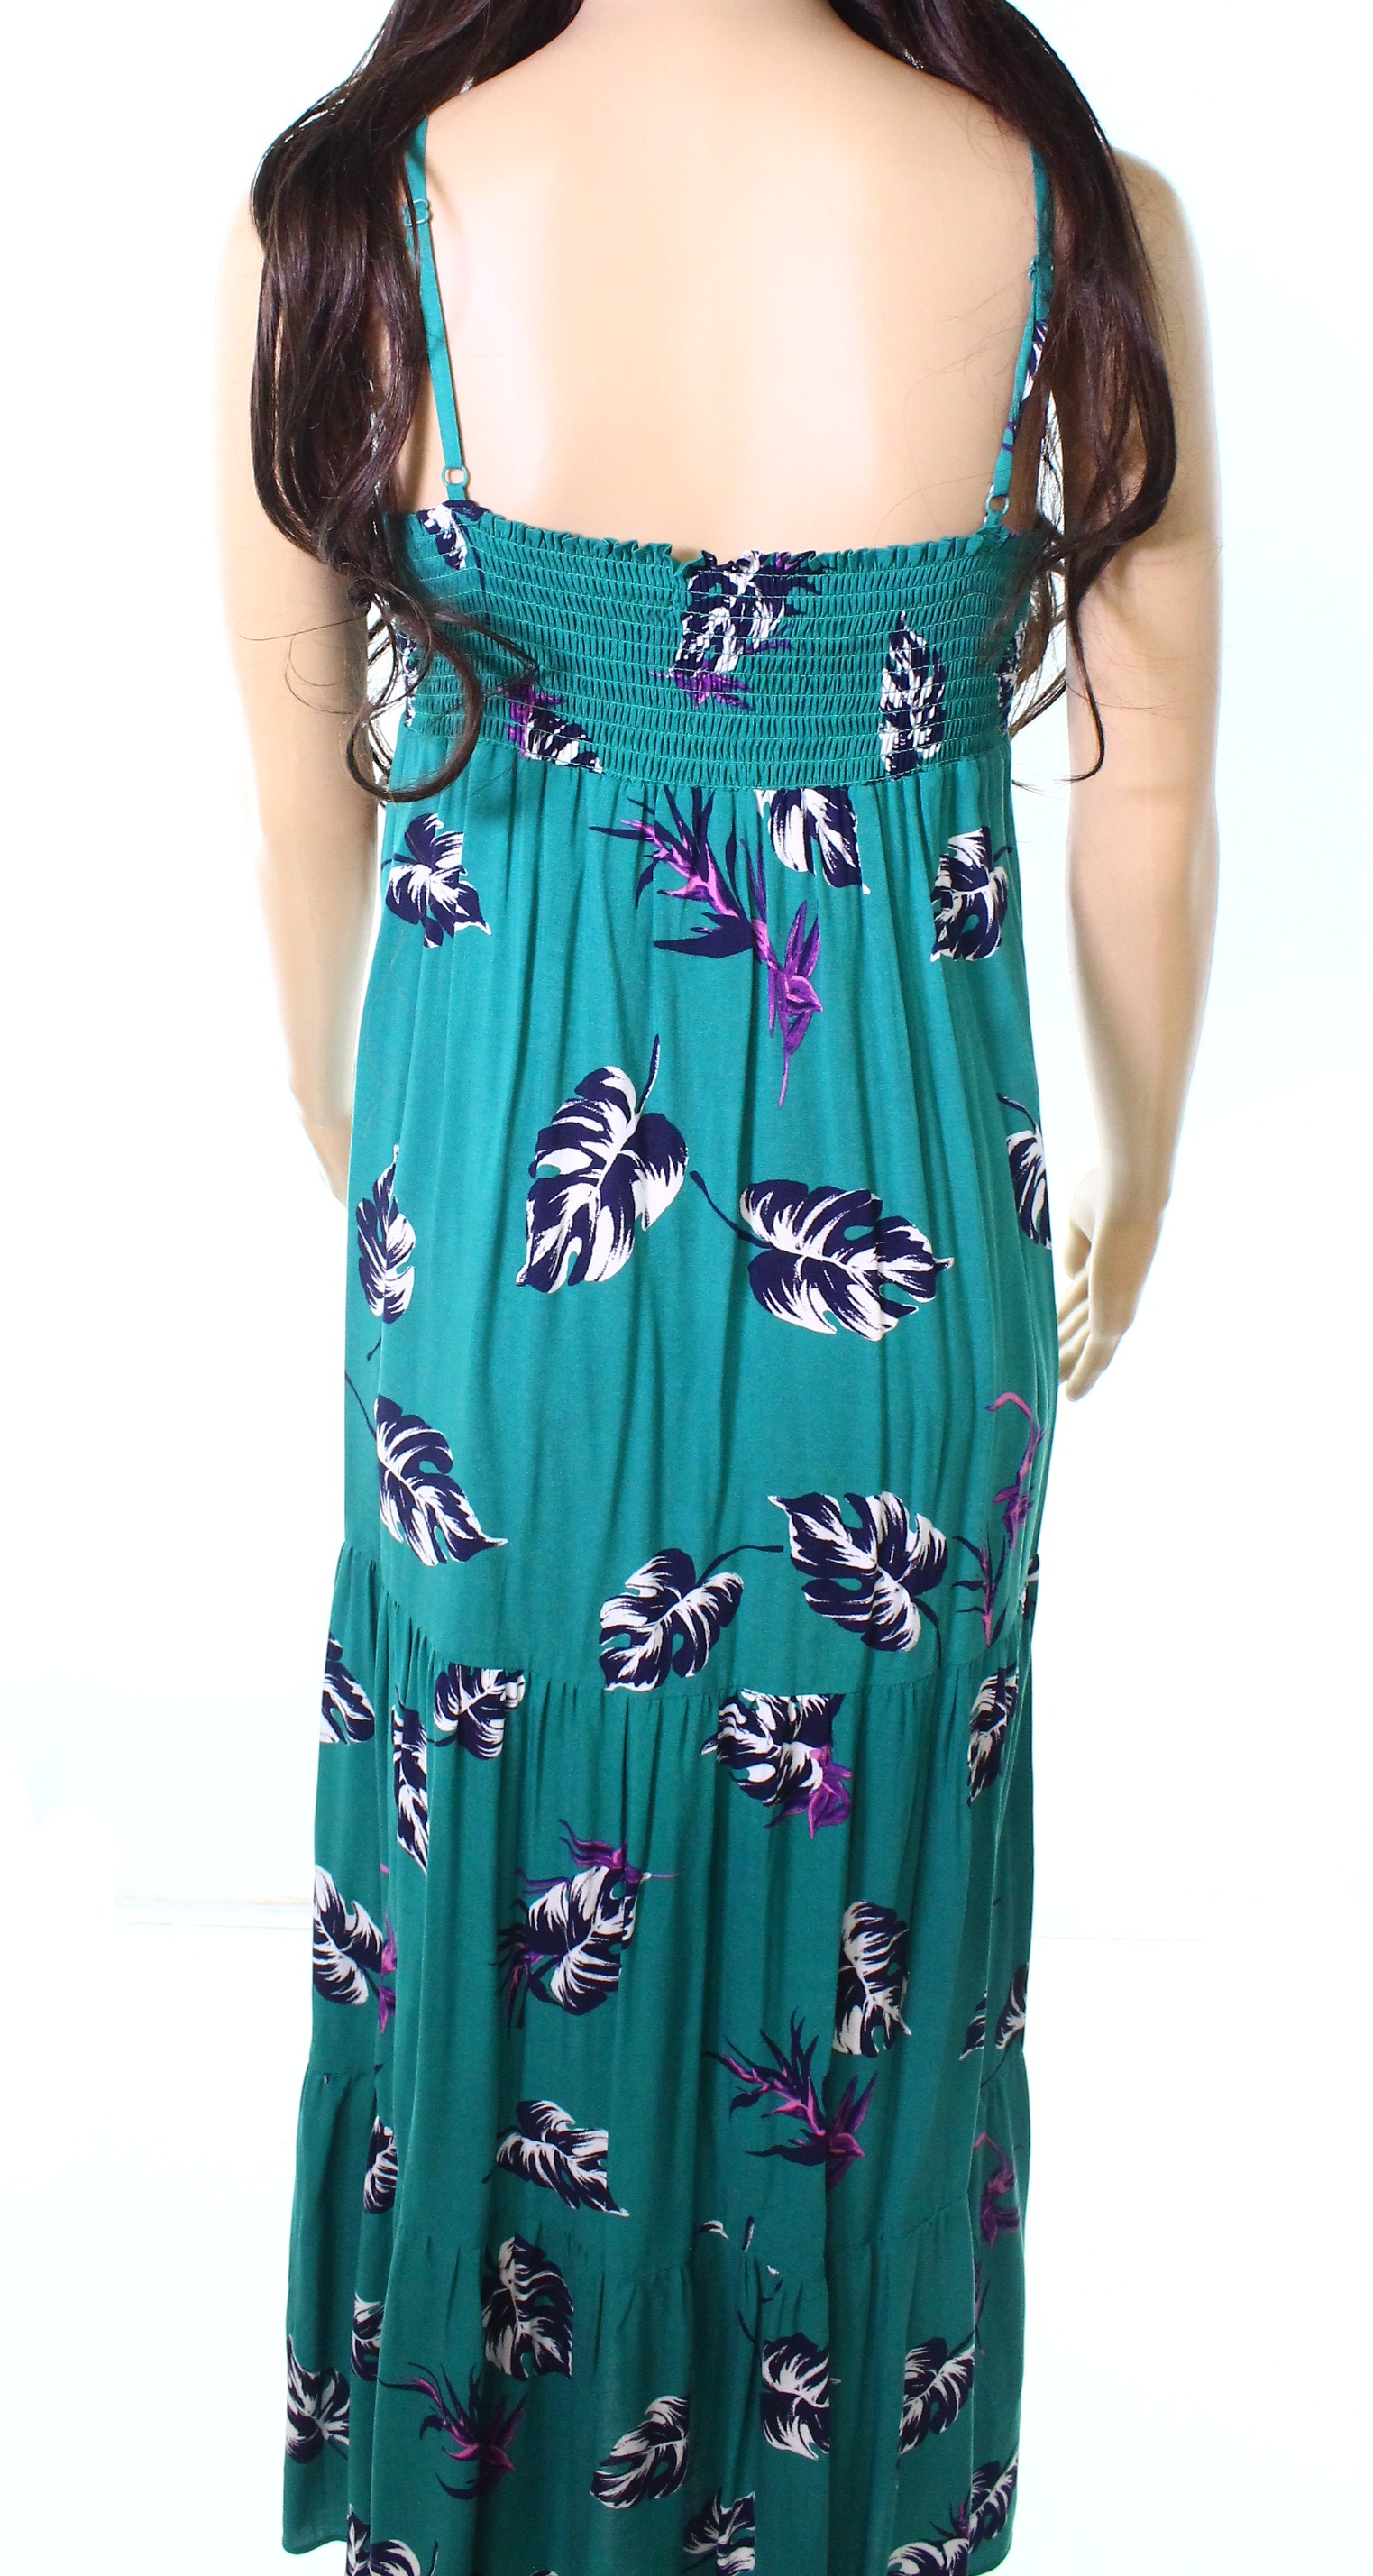 4aa1dba81451 Details about Soprano NEW Green Womens Size Small S Leaf-Print Knot-Front  Maxi Dress $58 928